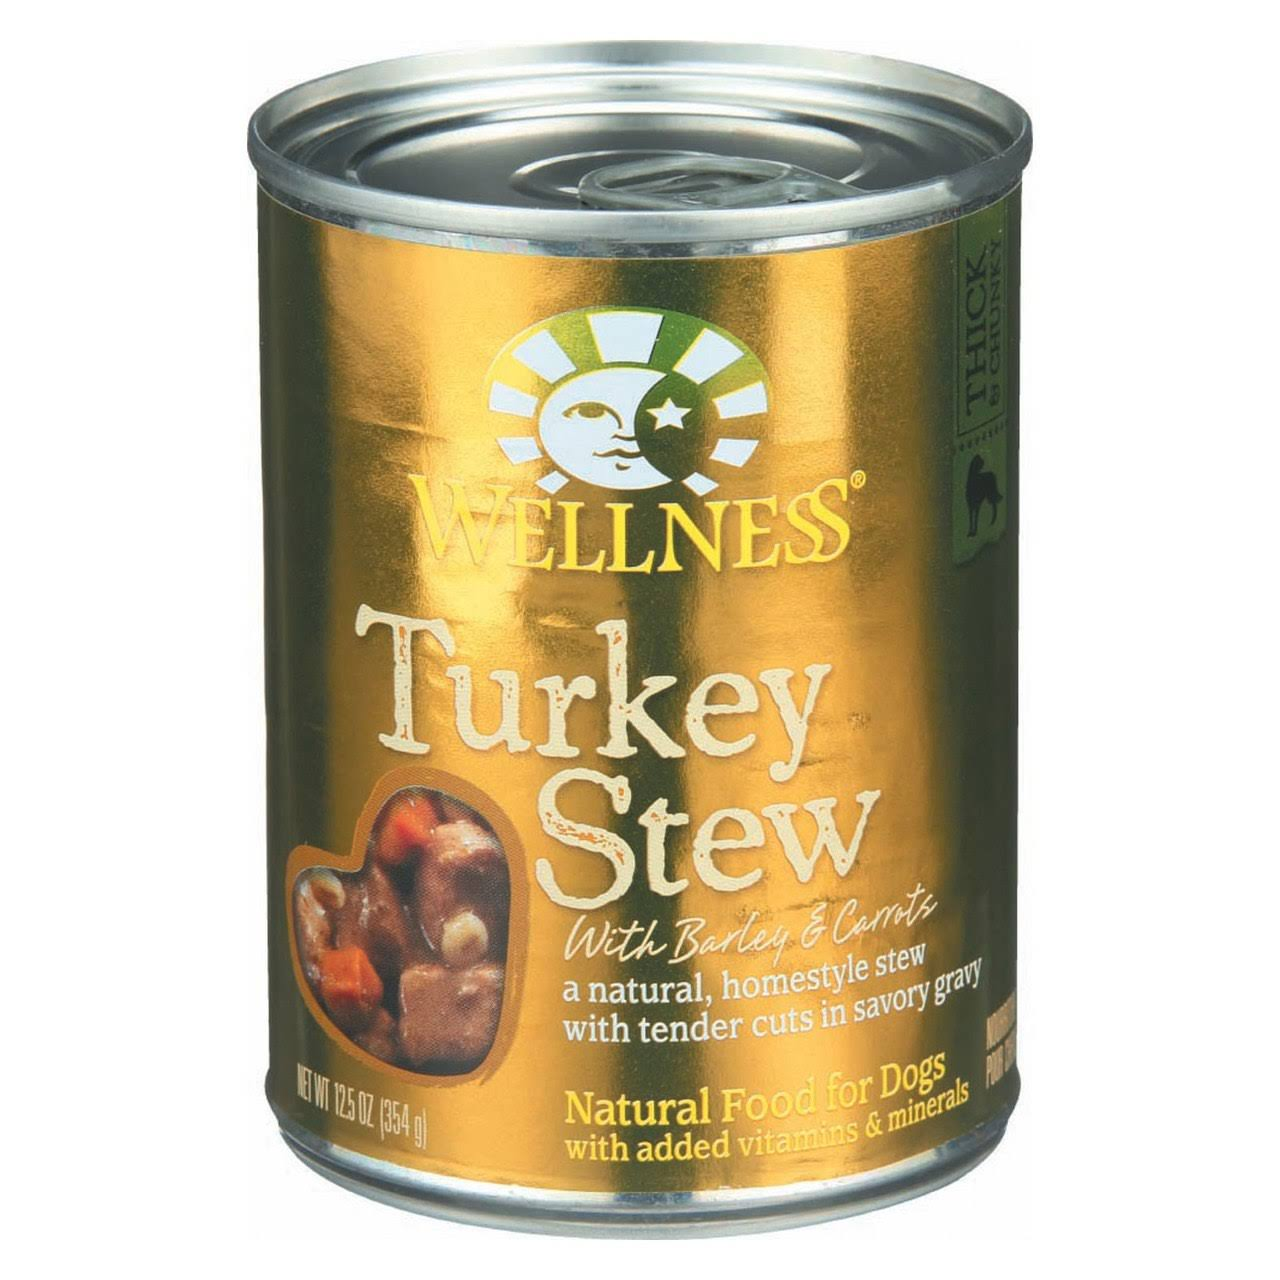 Wellness Natural Food for Dogs - Turkey Stew with Barley and Carrots